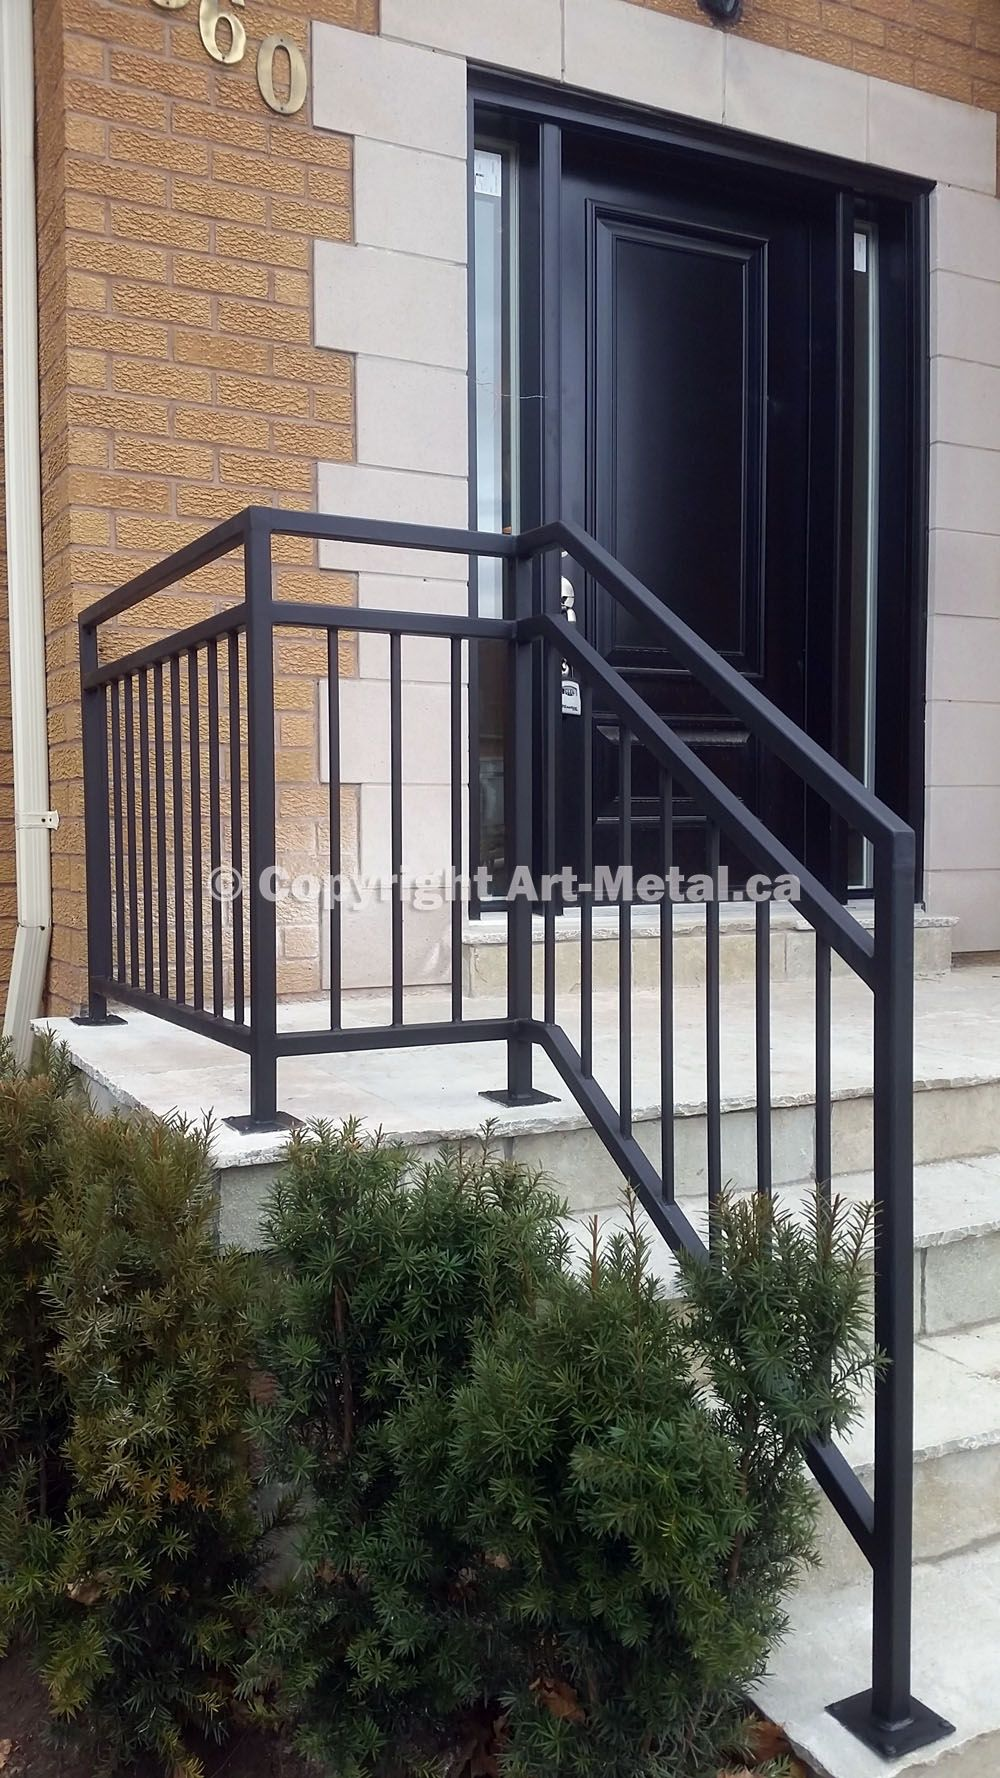 Best Exterior Railings Handrails For Stairs Porches Decks 640 x 480